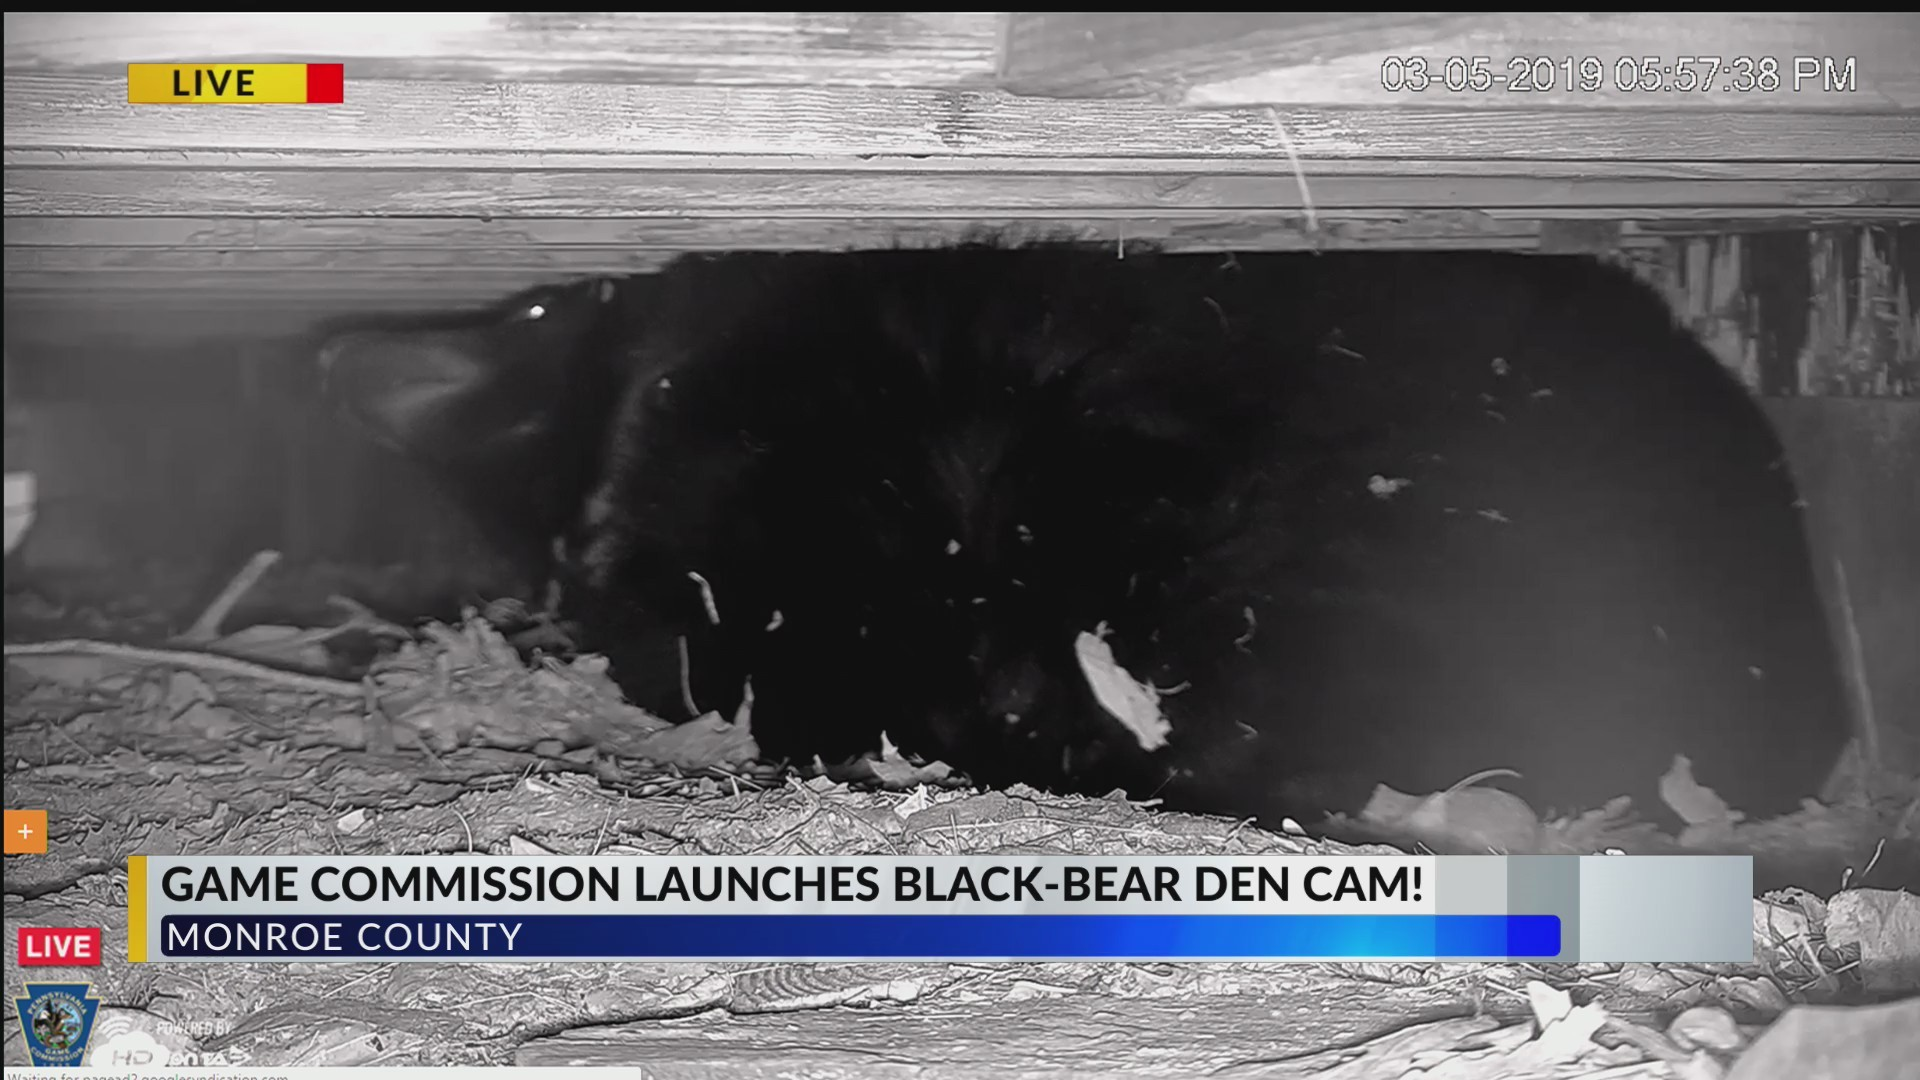 Game Commission launches black bear den cam